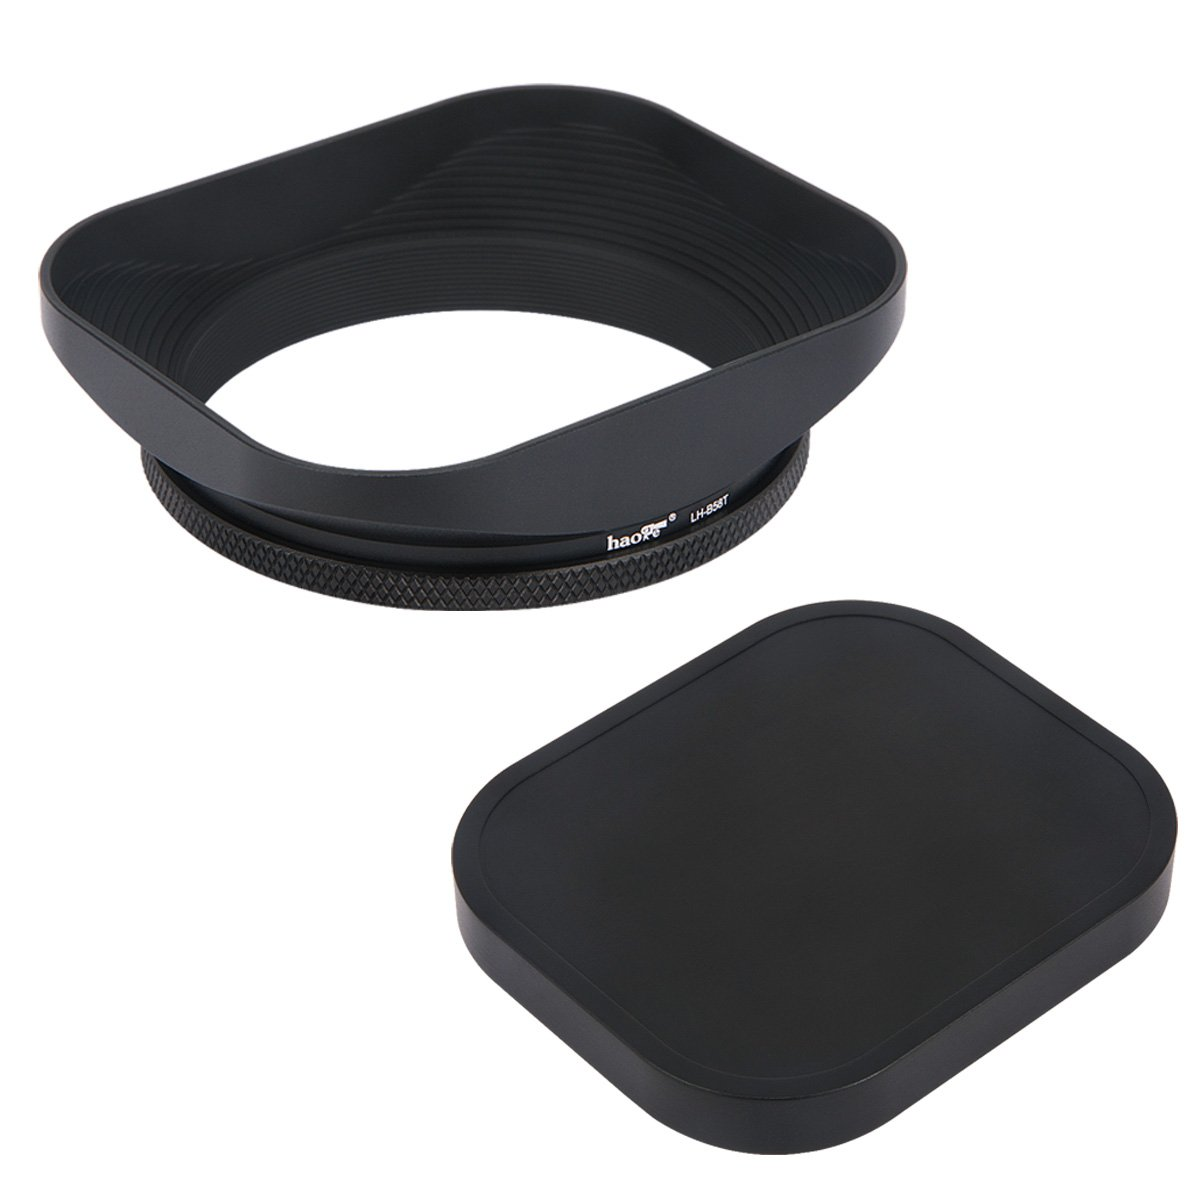 Haoge LH-B58T 58mm Square Metal Screw-in Mount Lens Hood Shade with Cap for 58mm Canon Nikon Sony Leica Leitz Carl Zeiss Voigtlander Nikkor Fujifilm Olympus Lens and Other 58mm Filter Thread Lens by Haoge